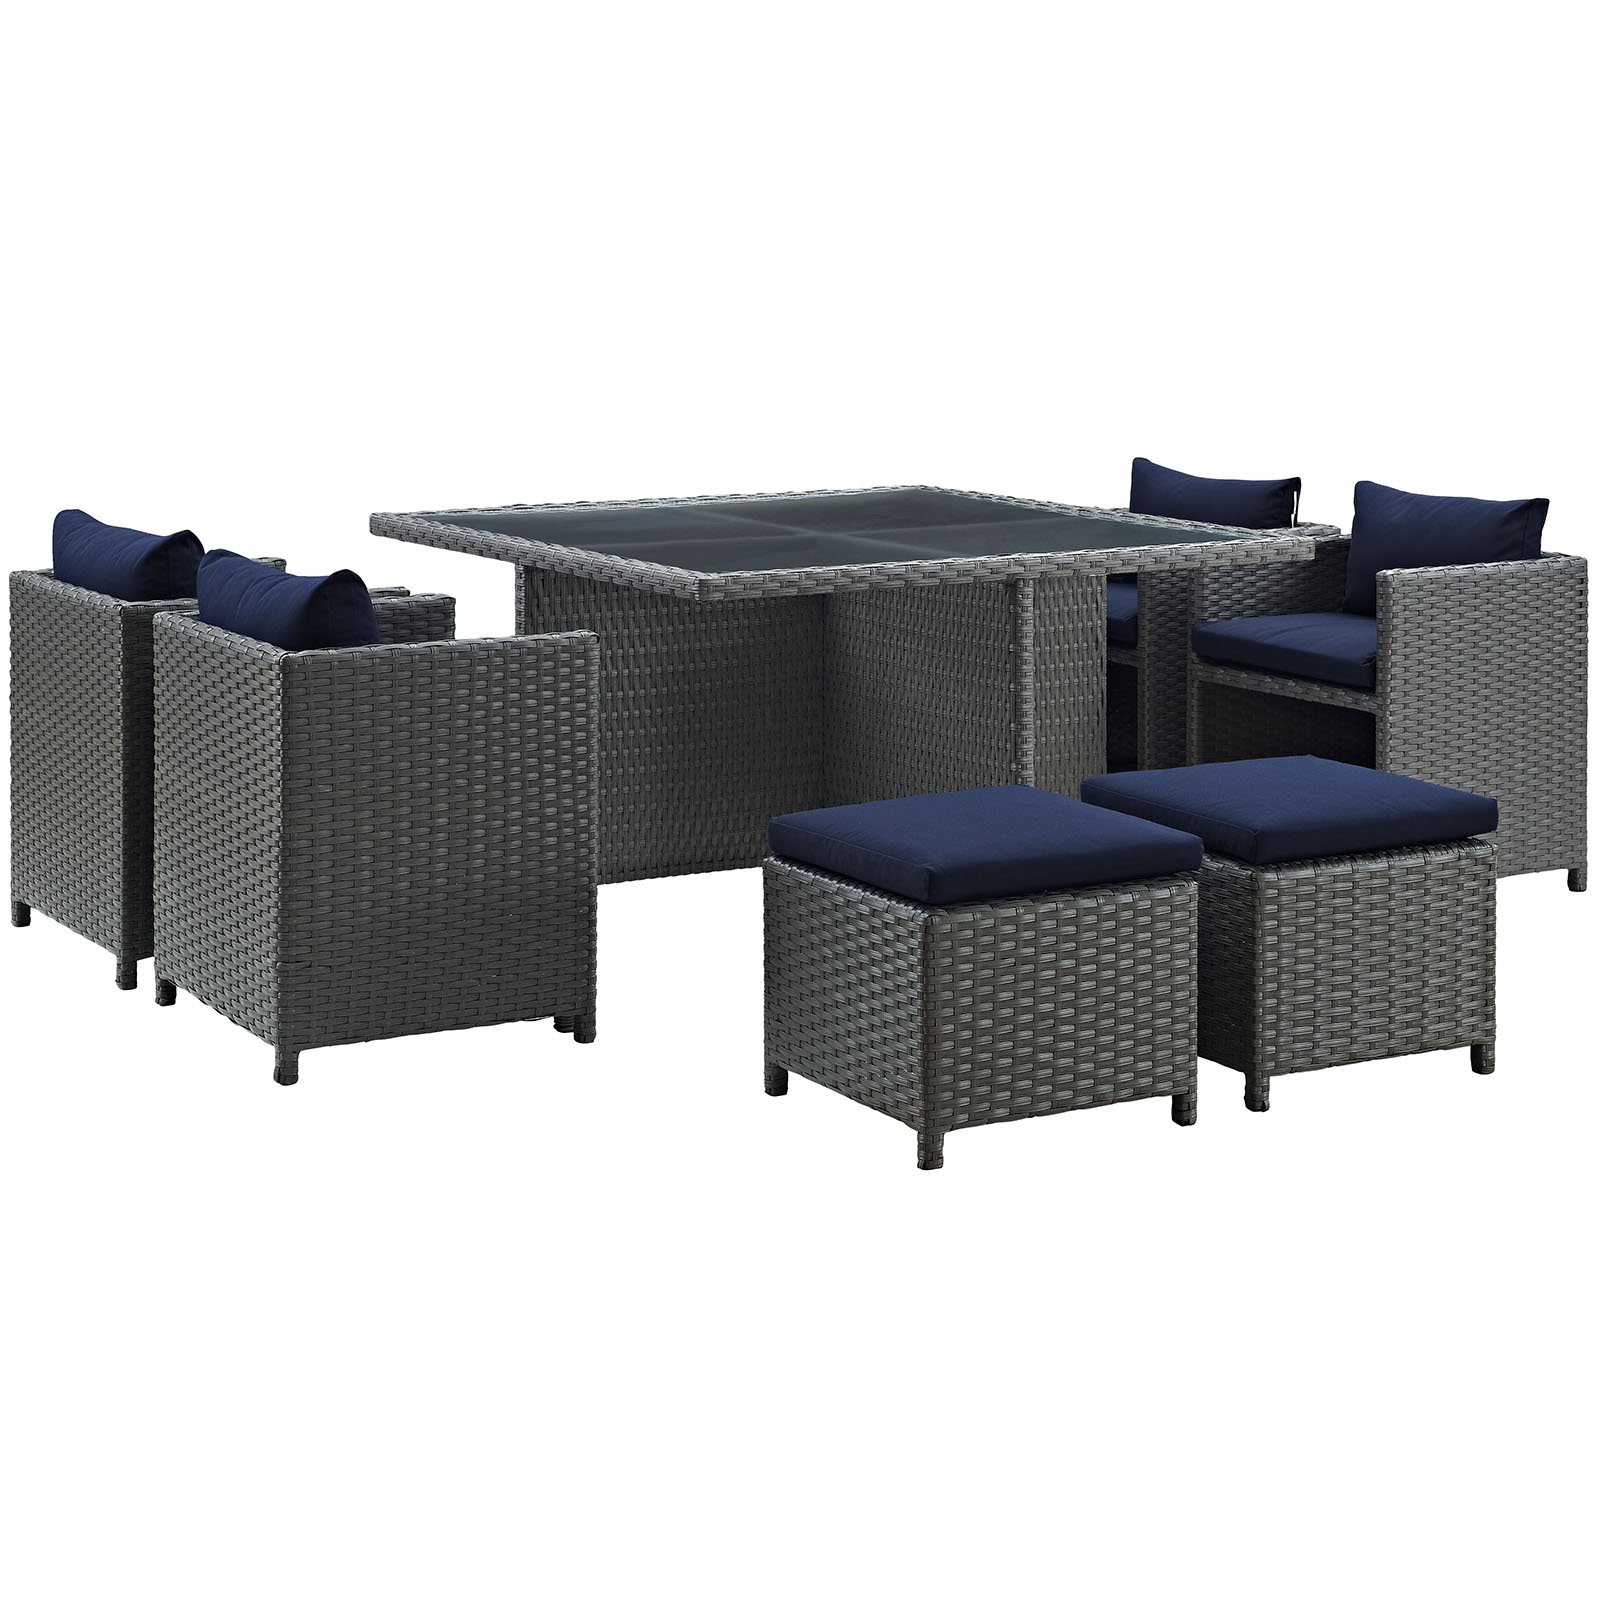 Modern Contemporary Urban Design Outdoor Patio Balcony Nine PCS Dining Chairs and Table Set, Navy Blue, Rattan